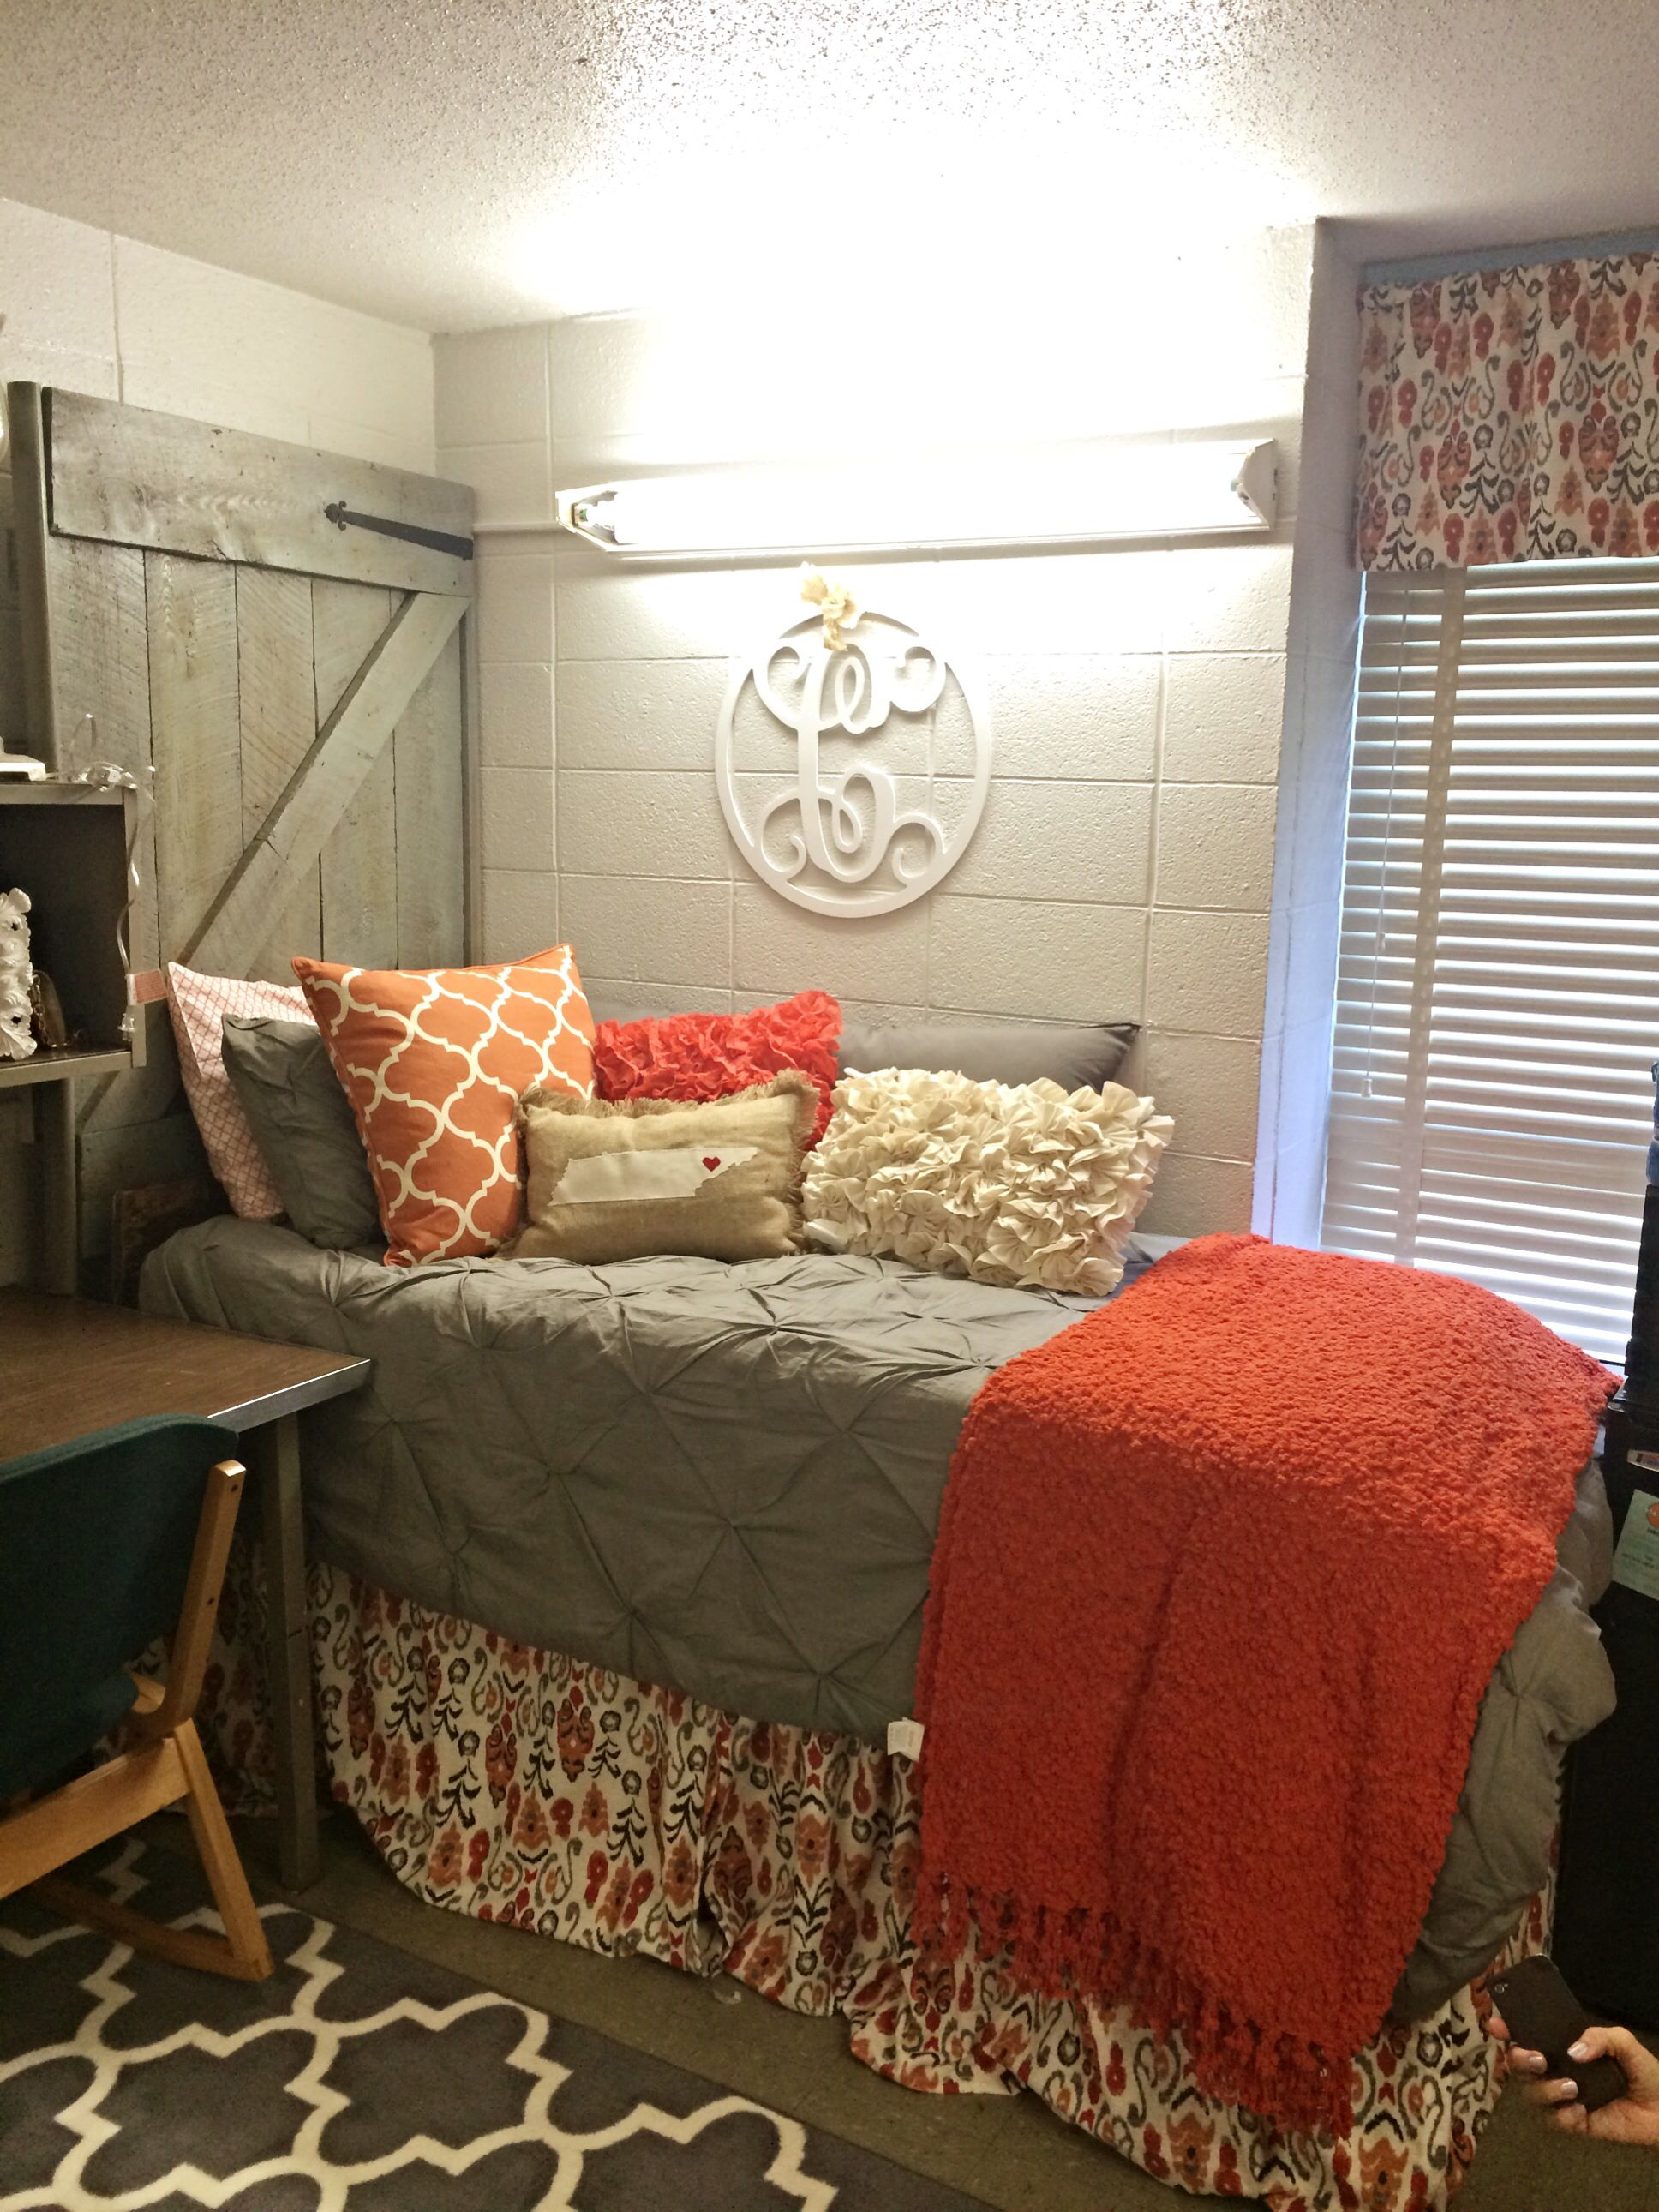 Great dorm room barnwood door headboard gray and orange - Dorm room bedding ideas ...